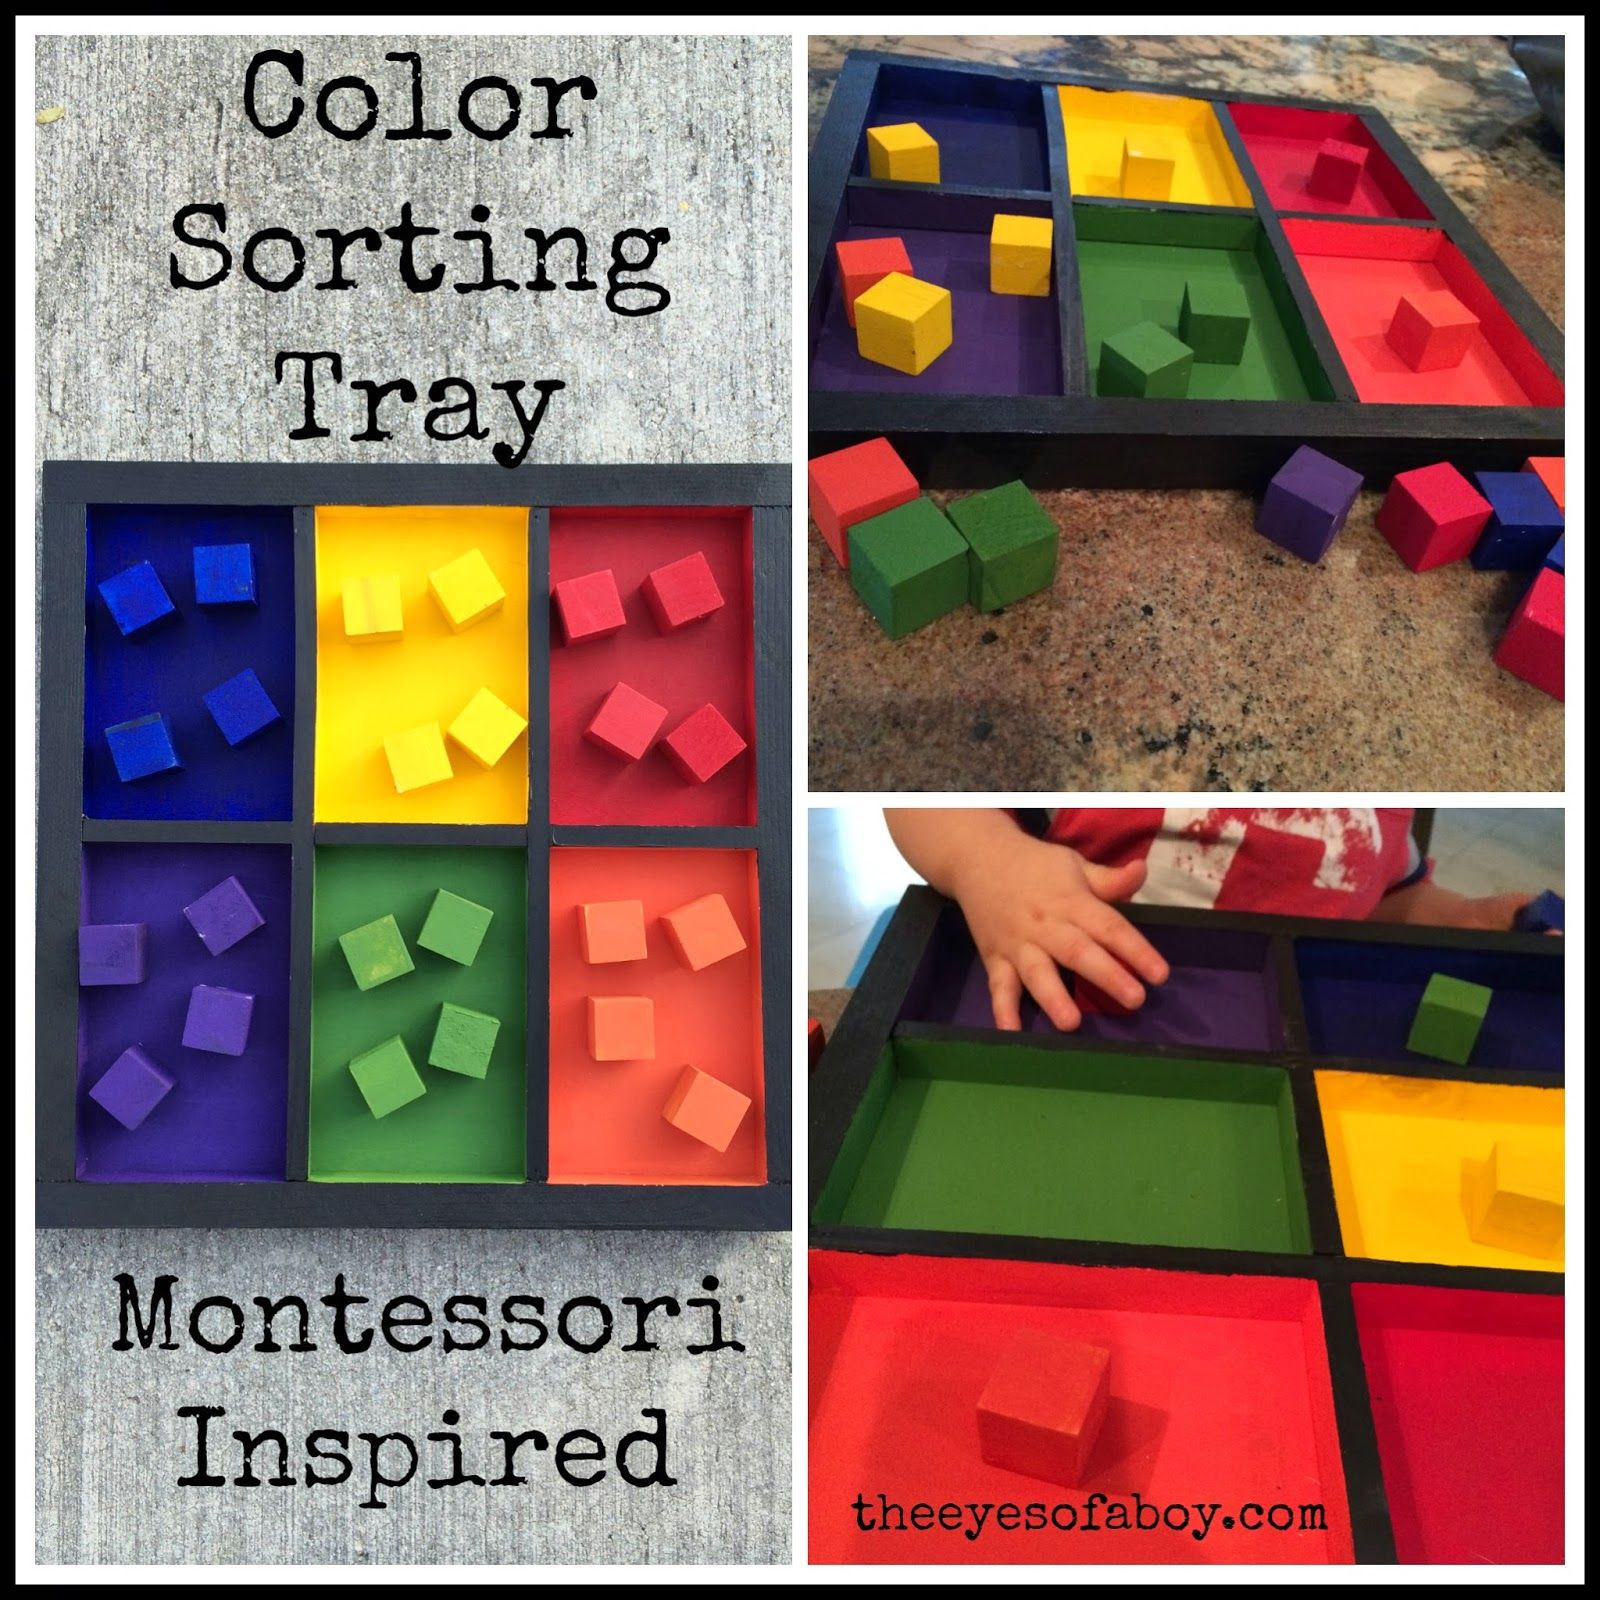 Montessori Inspired Wooden Color Sorting Tray